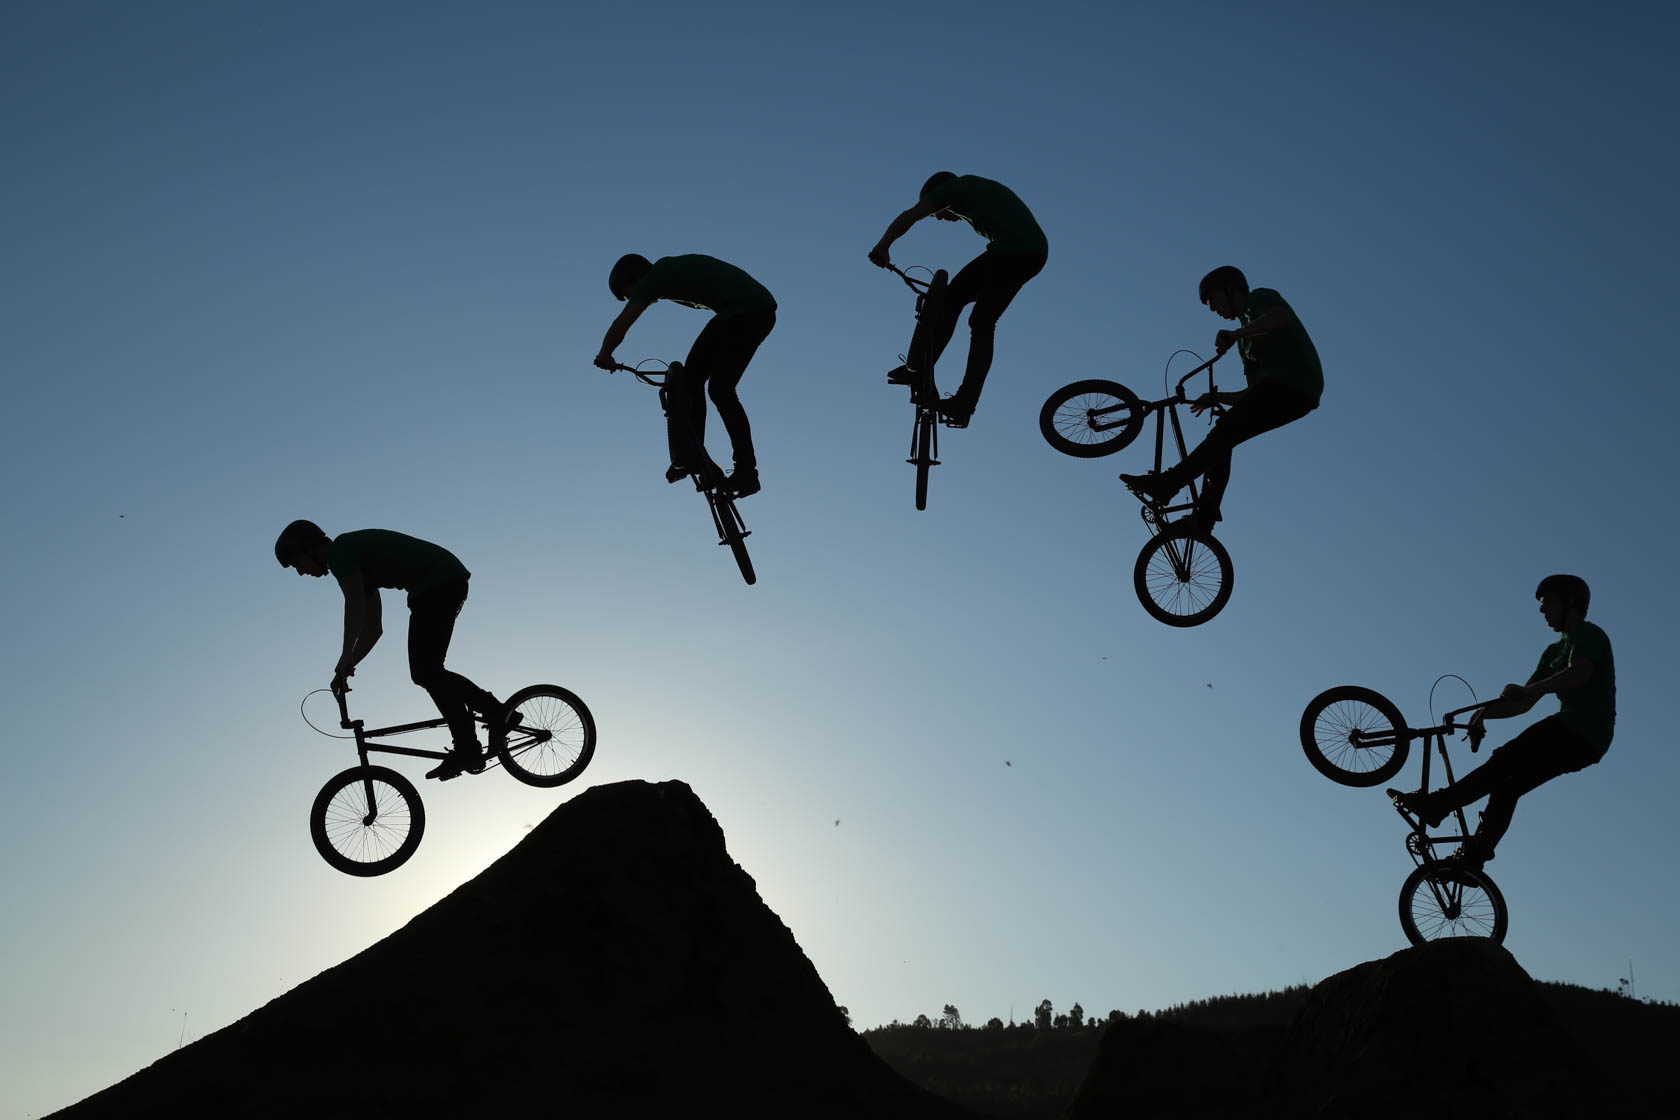 Silhouette of BMX riders taken on Canon EOS 5D Mark III DSLR camera